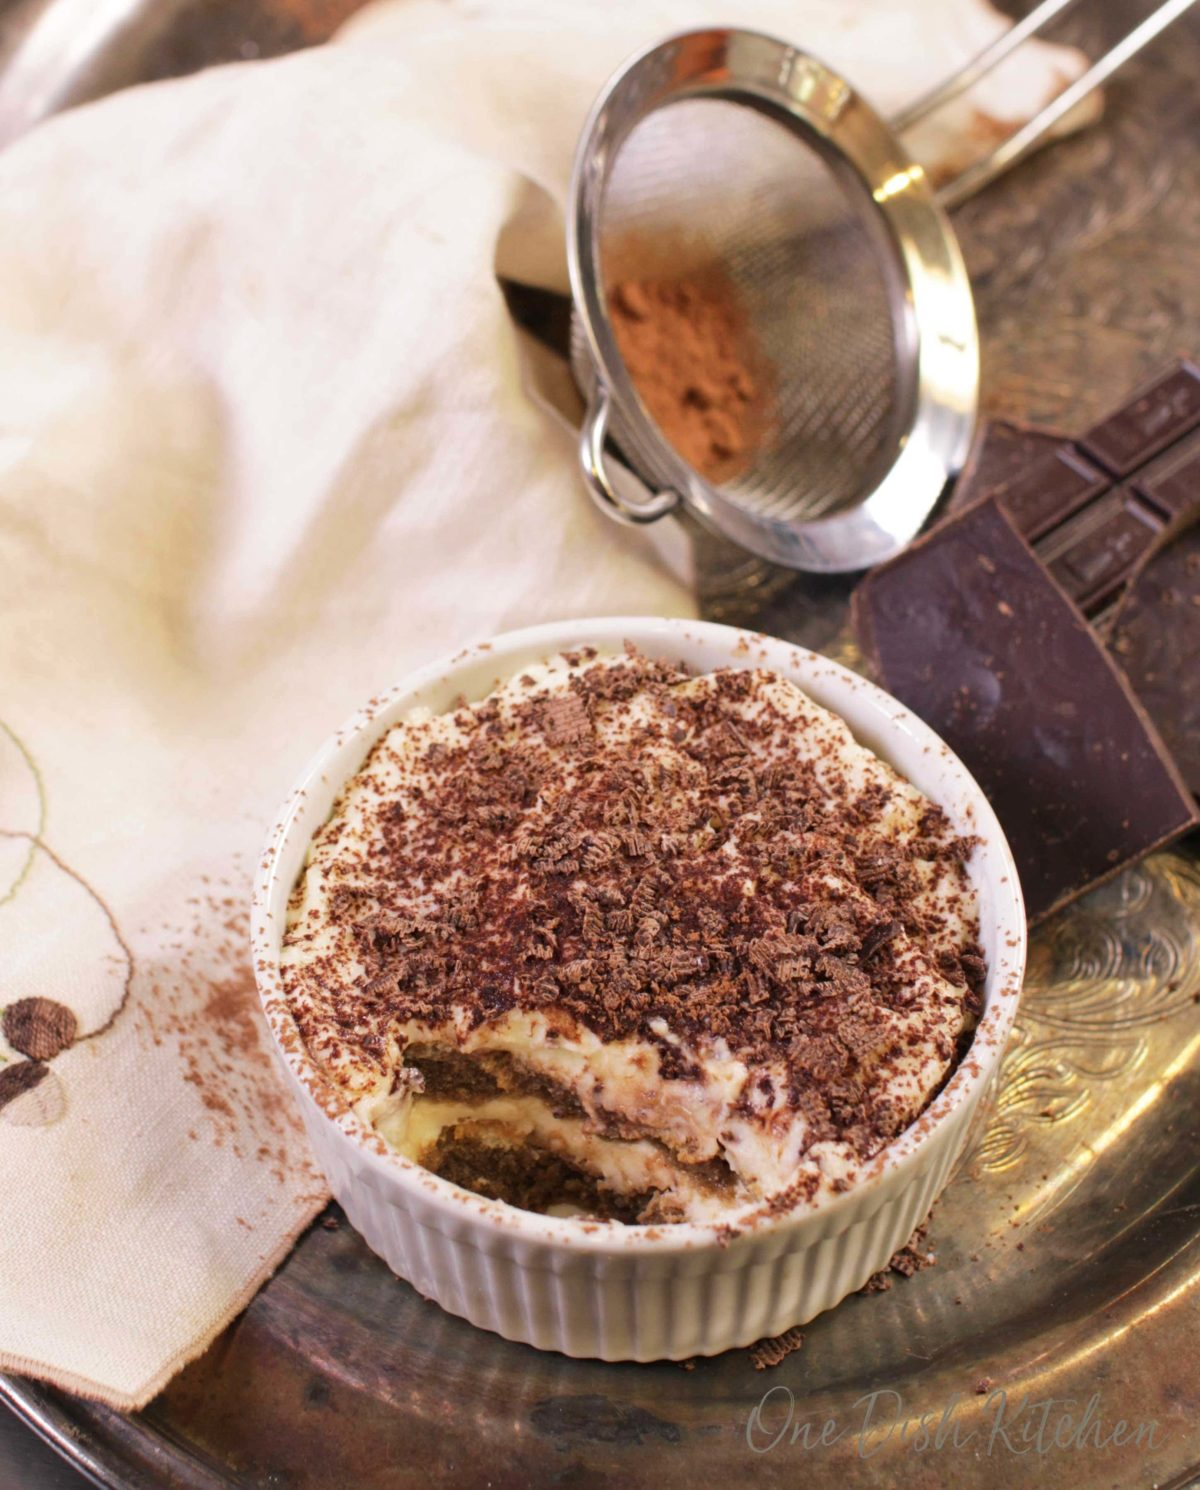 A mini tiramisu topped with chocolate shavings in a ramekin next to a piece of a chocolate bar, a cream-colored cloth napkin, and cocoa powder in a sieve all on a metal tray